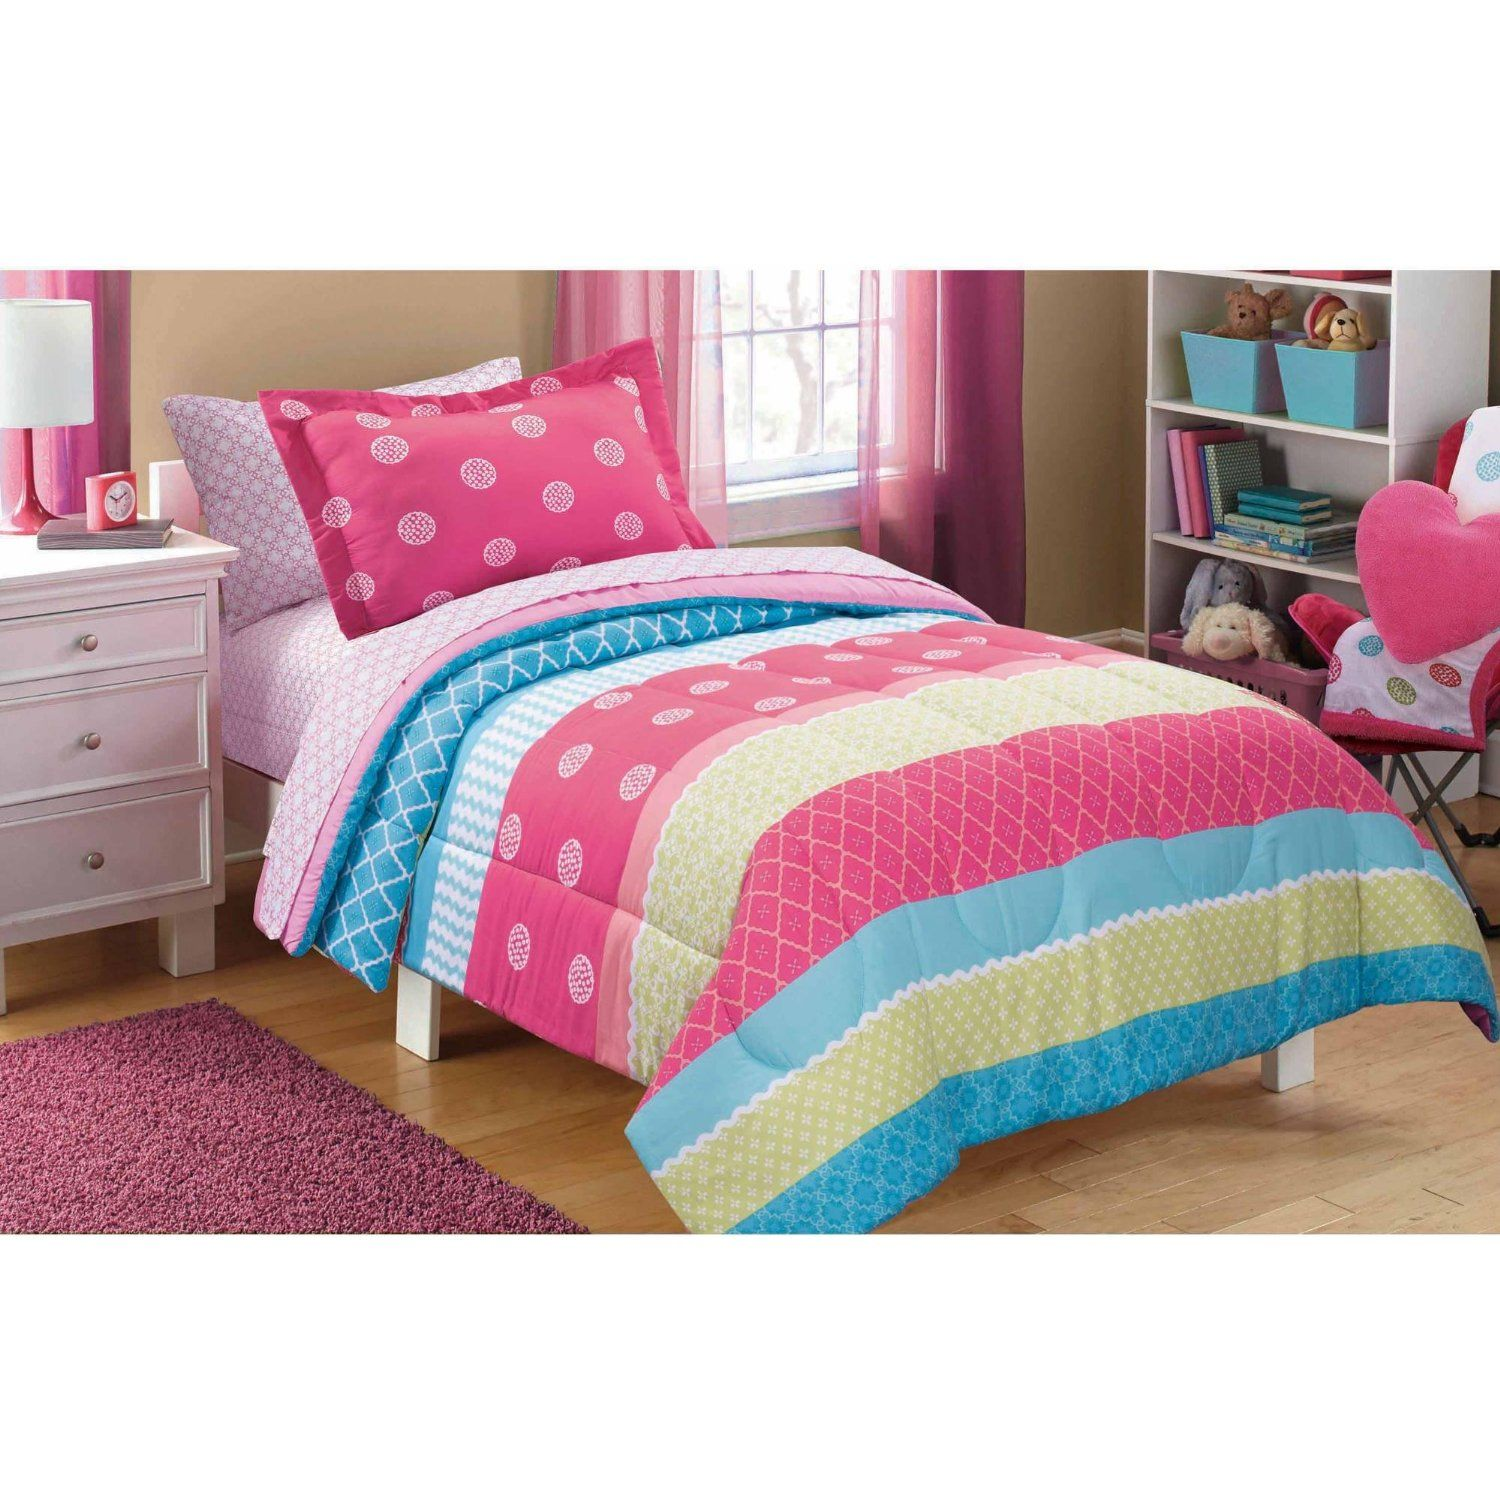 Mainstays Kids Mix It Up Bed in a Bag Bedding Set FULL